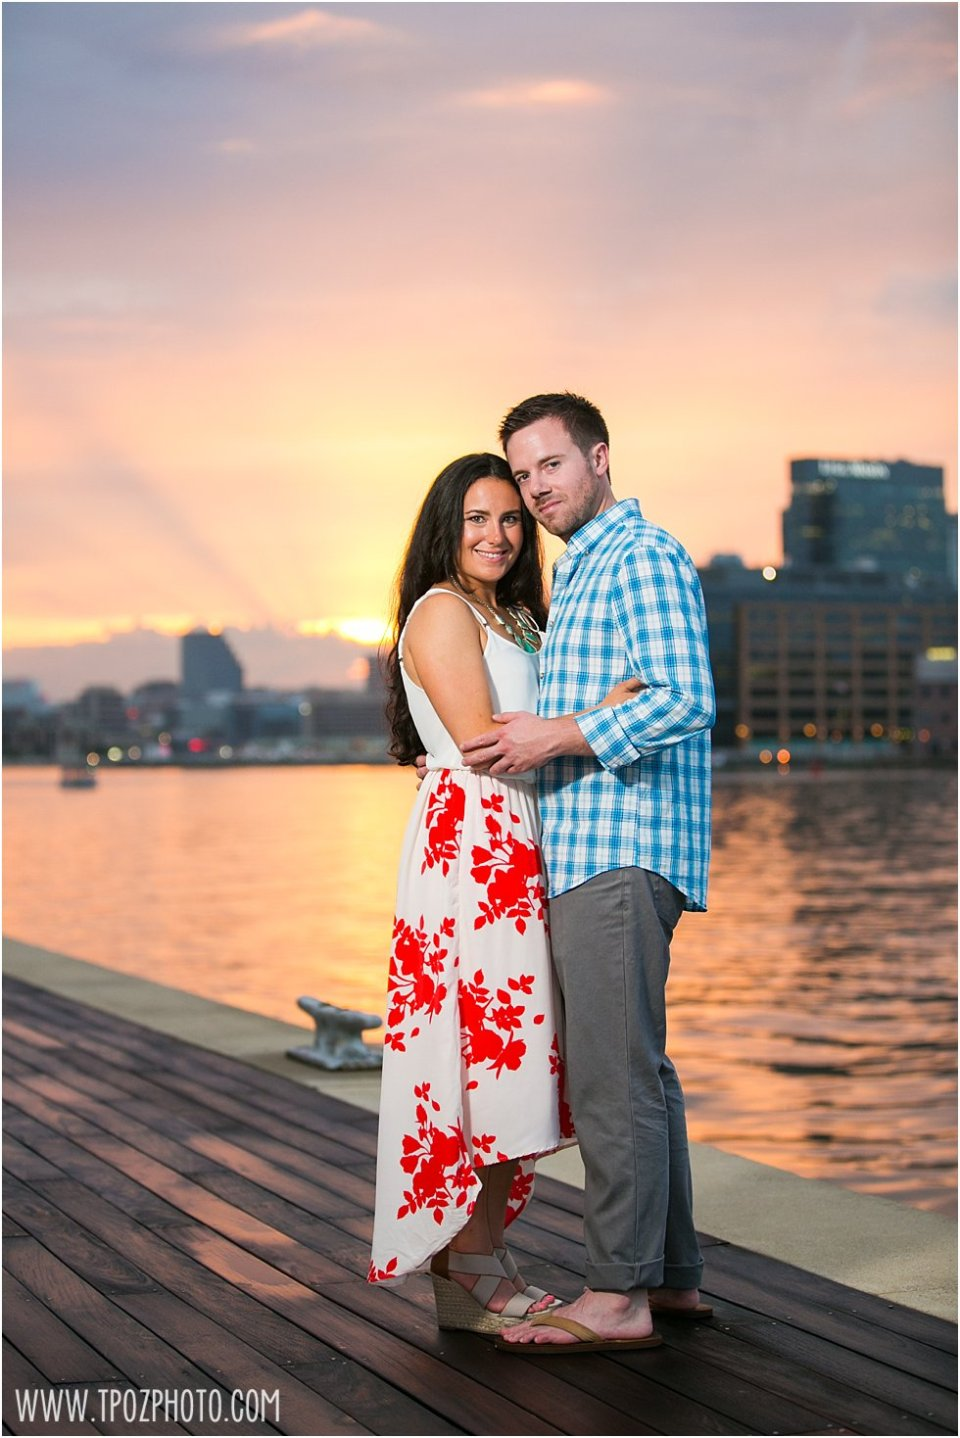 Sunset Tide Point Engagement Photos •  tPoz Photography  •  www.tpozphoto.com